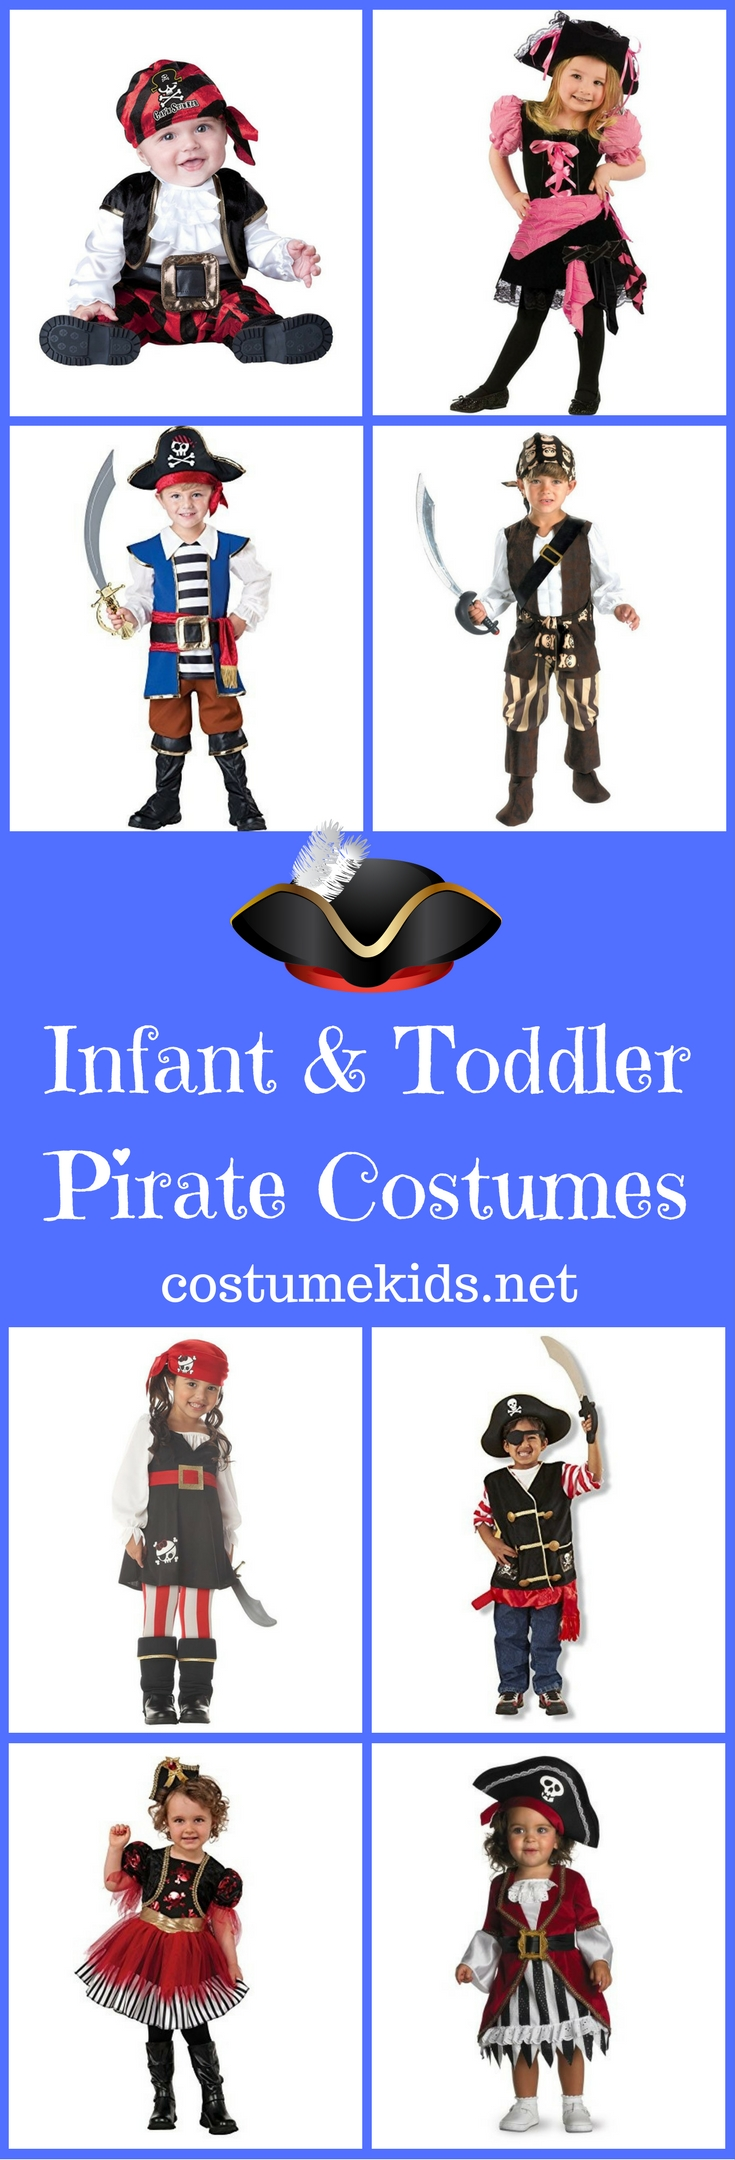 Infant and Toddler Pirate Costumes